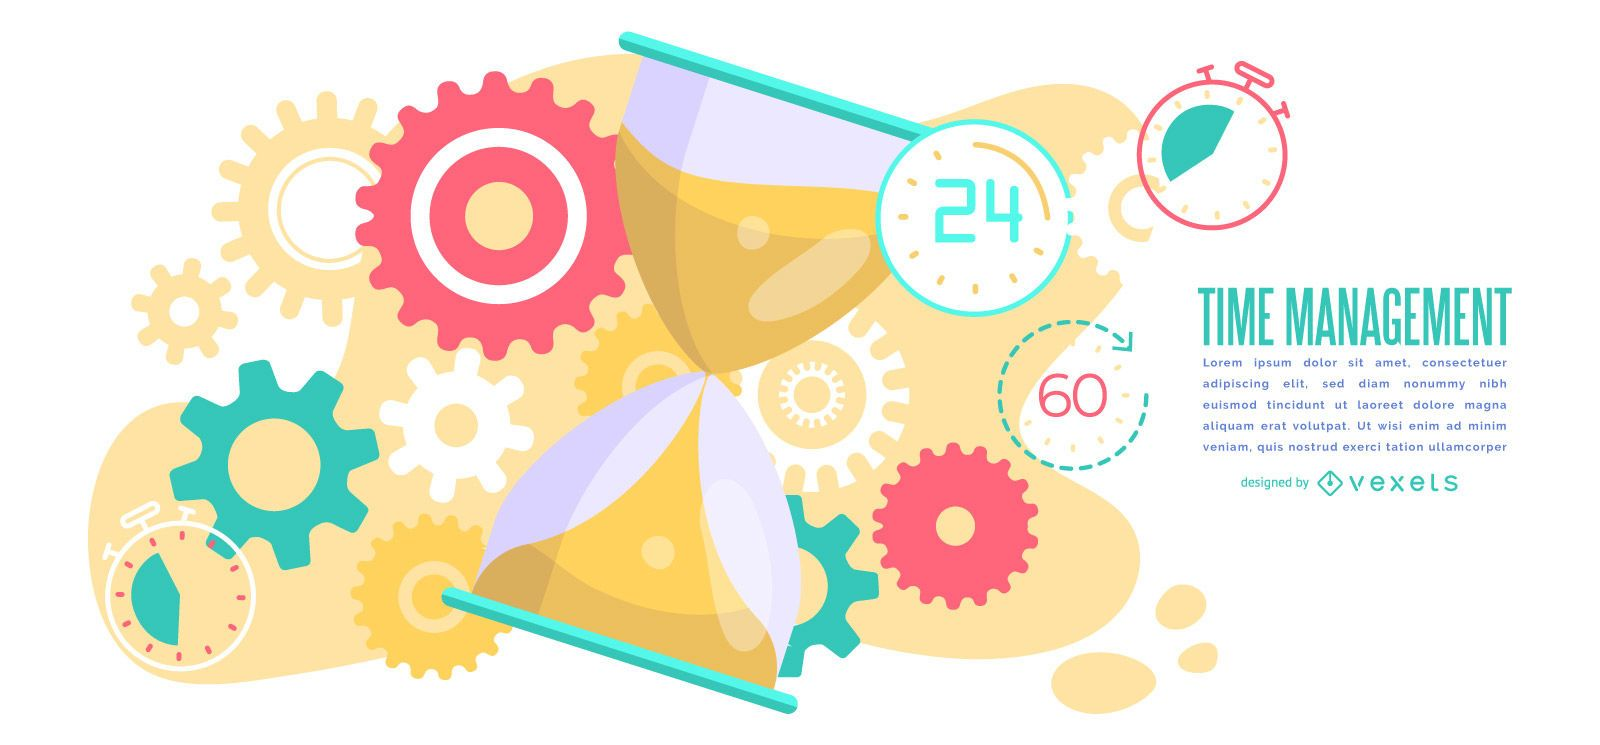 Time management abstract illustration